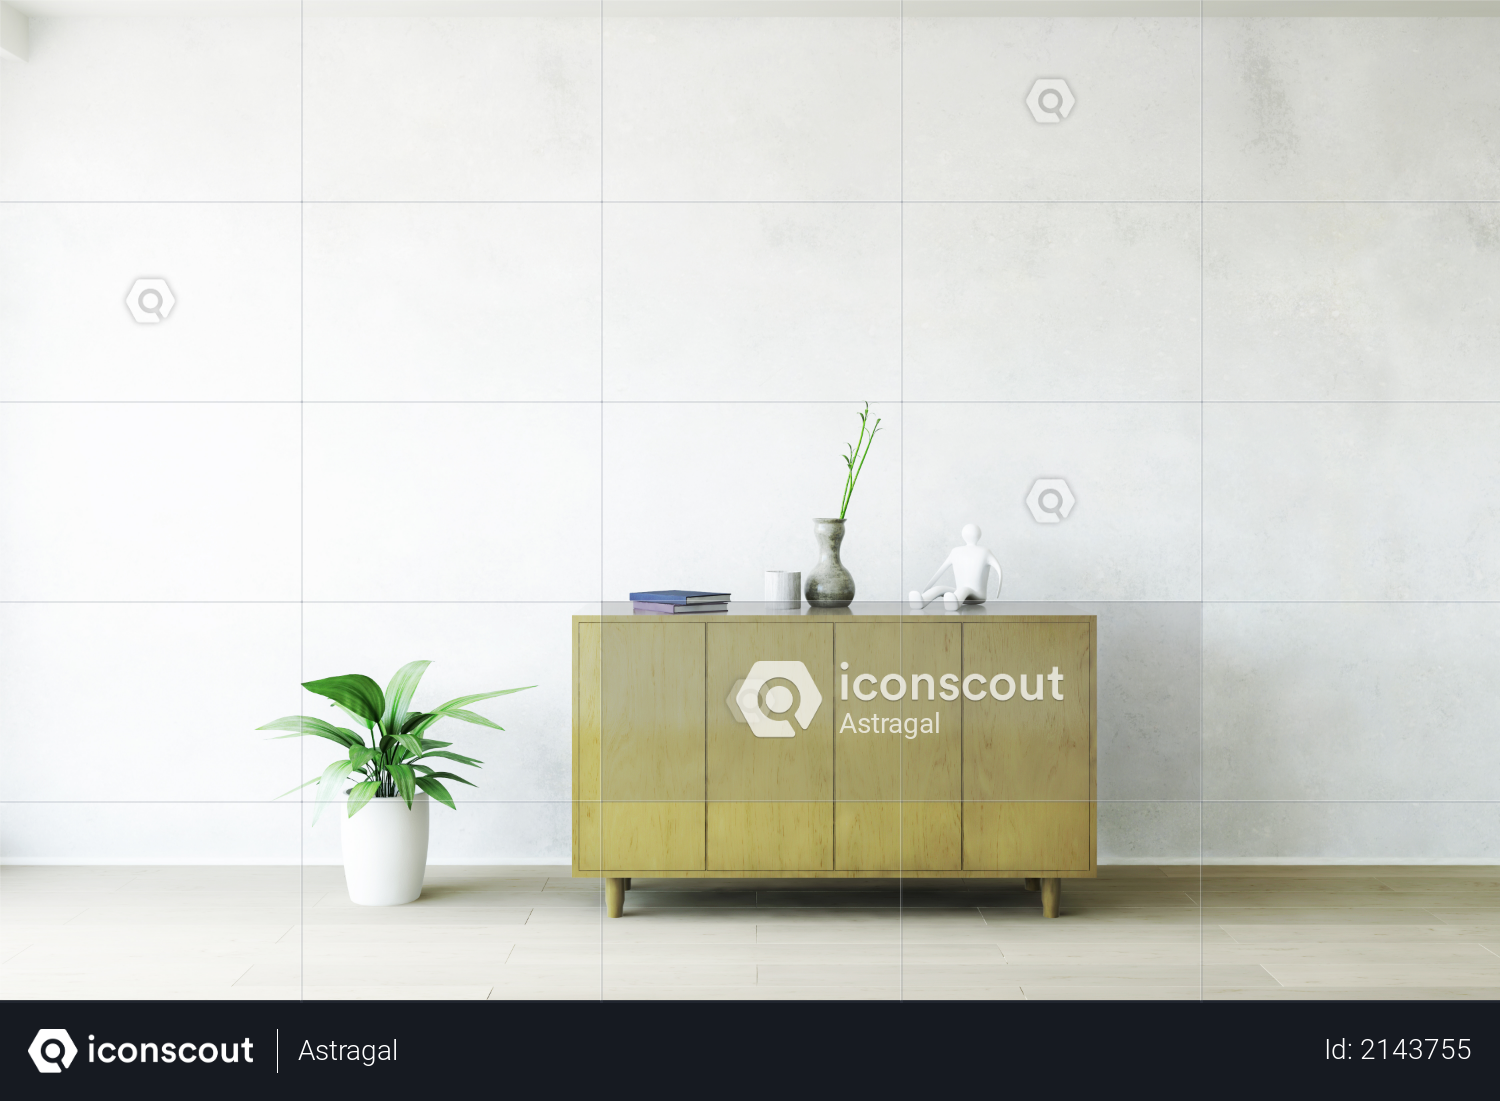 Old Wooden Commode with Accessories near the White Plaster Dirty Wall, Green Plant on the Wooden Floor, Fashion Decor, Living Room Conceptual Style, 3D Rendering Trendy Art Graphic Design Photo